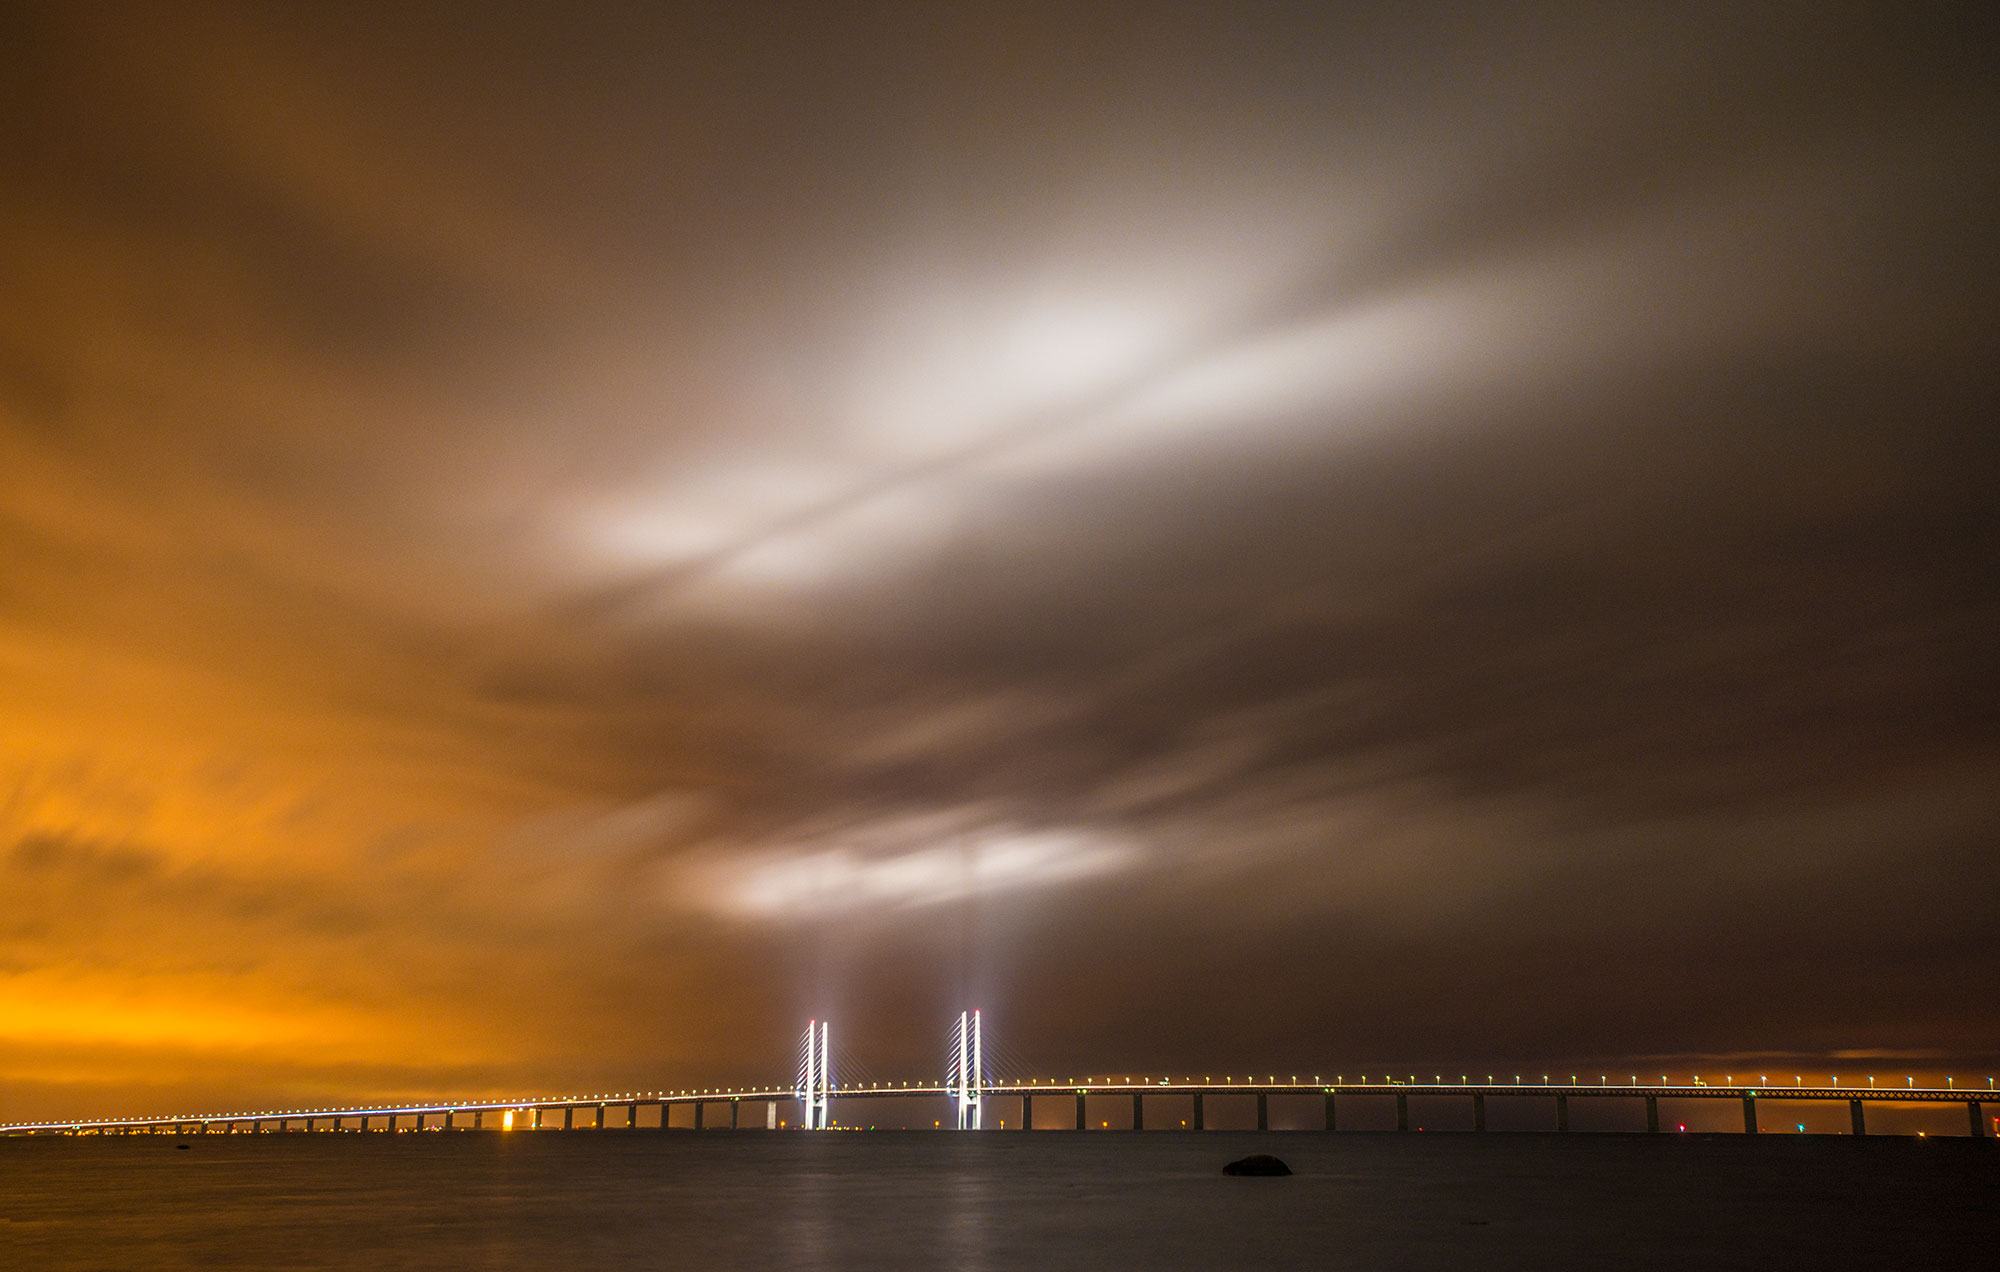 Oresund Bridge at night, saltholm, Peberholm, denmark